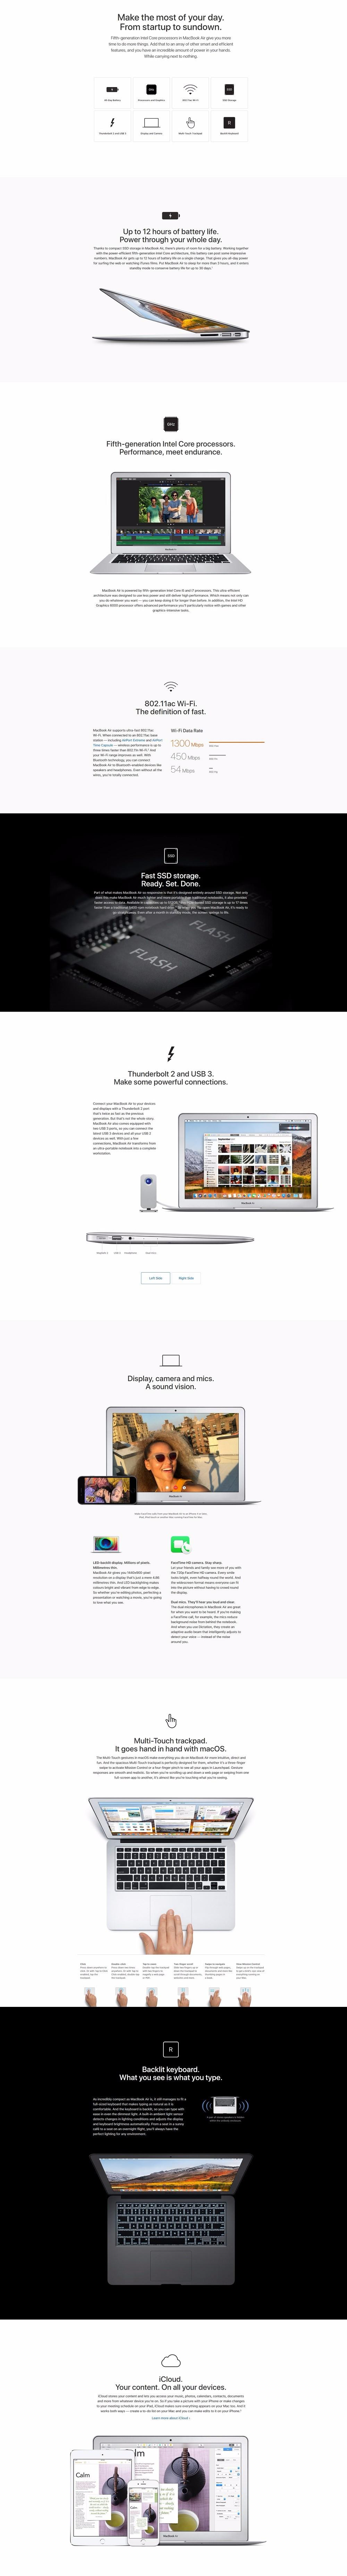 Macbook Air-2.jpg